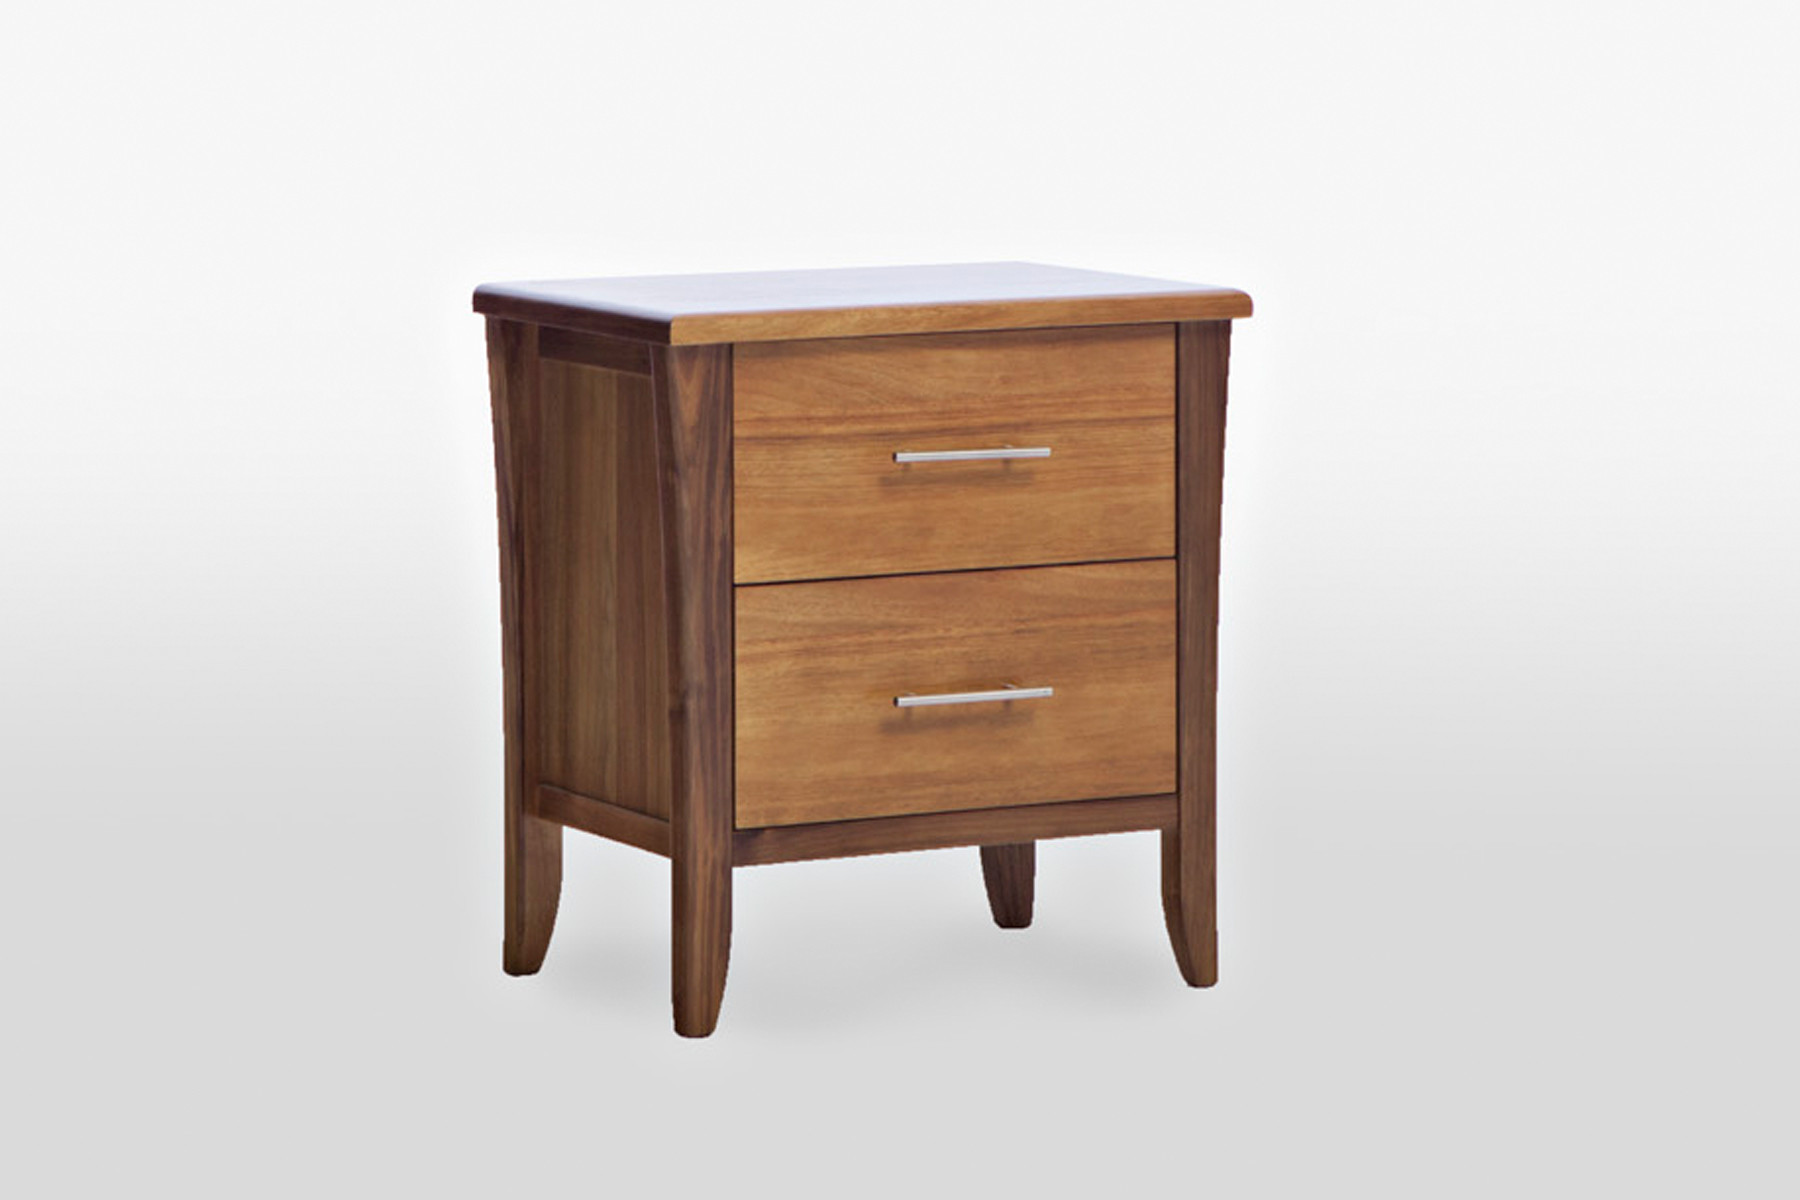 Modern Bedside Tables | Walnut Nightstands | Wrought Iron Night Stand